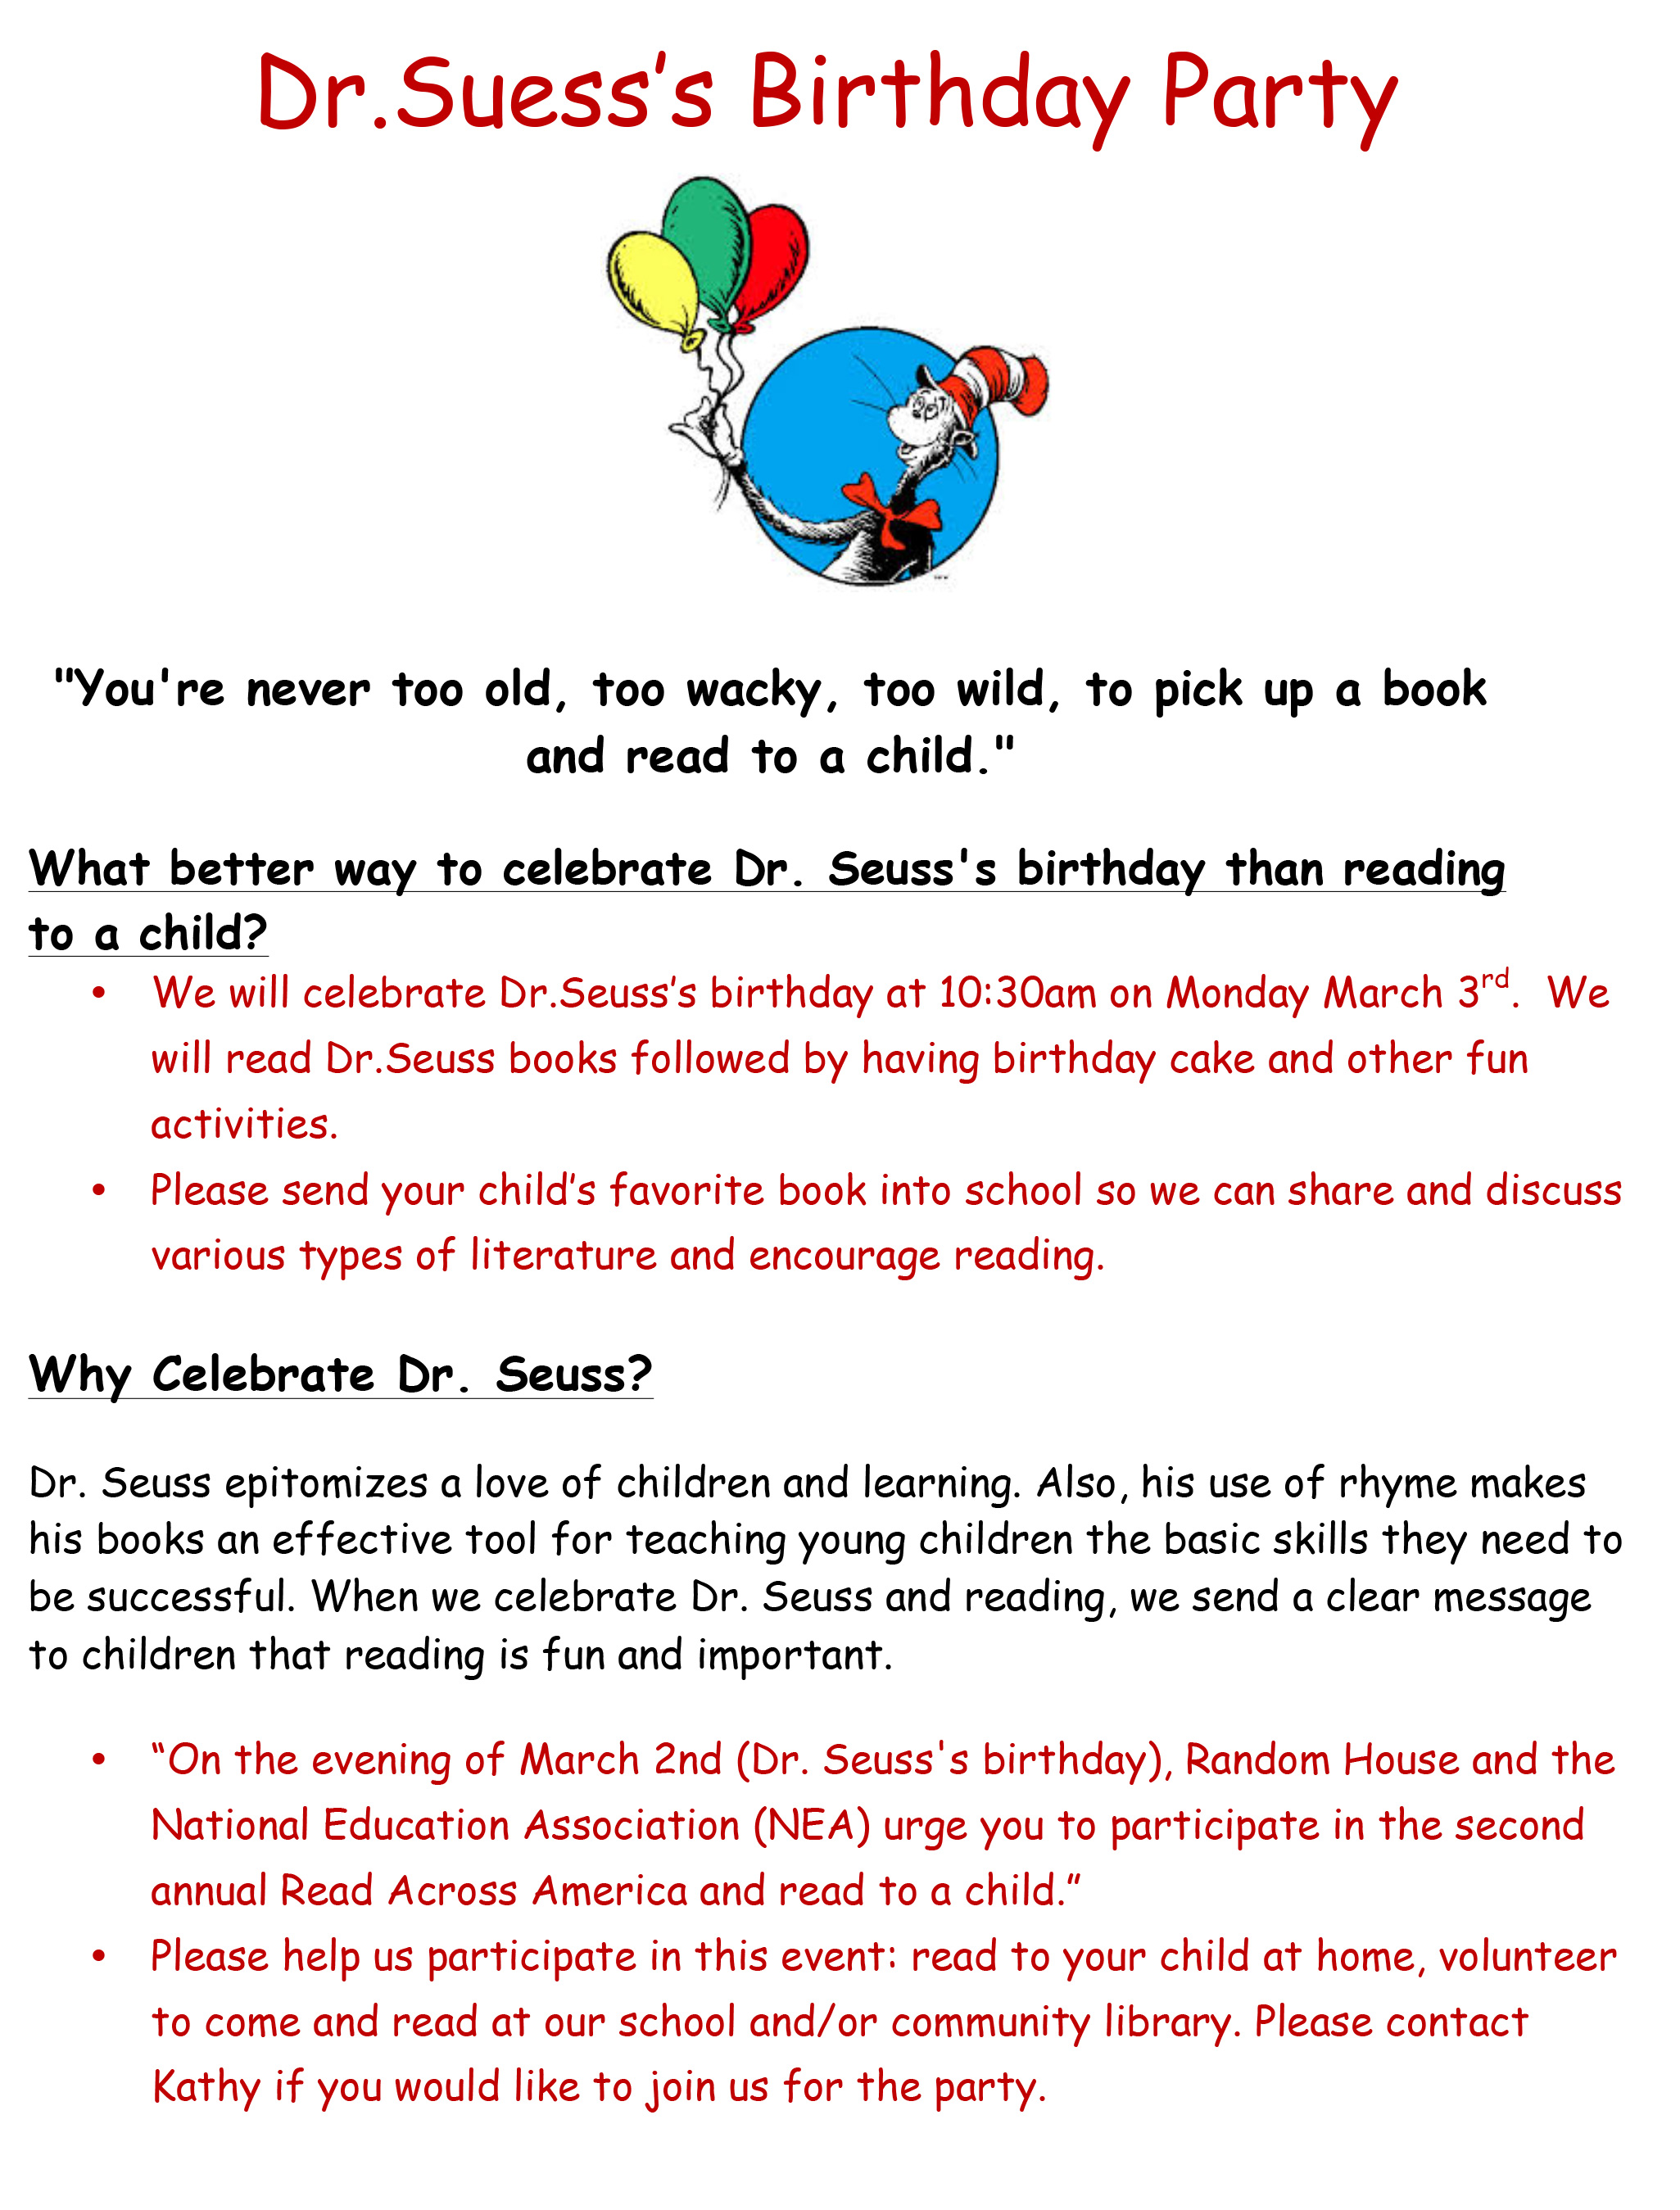 Dr.Seuss-birthday-party-2014